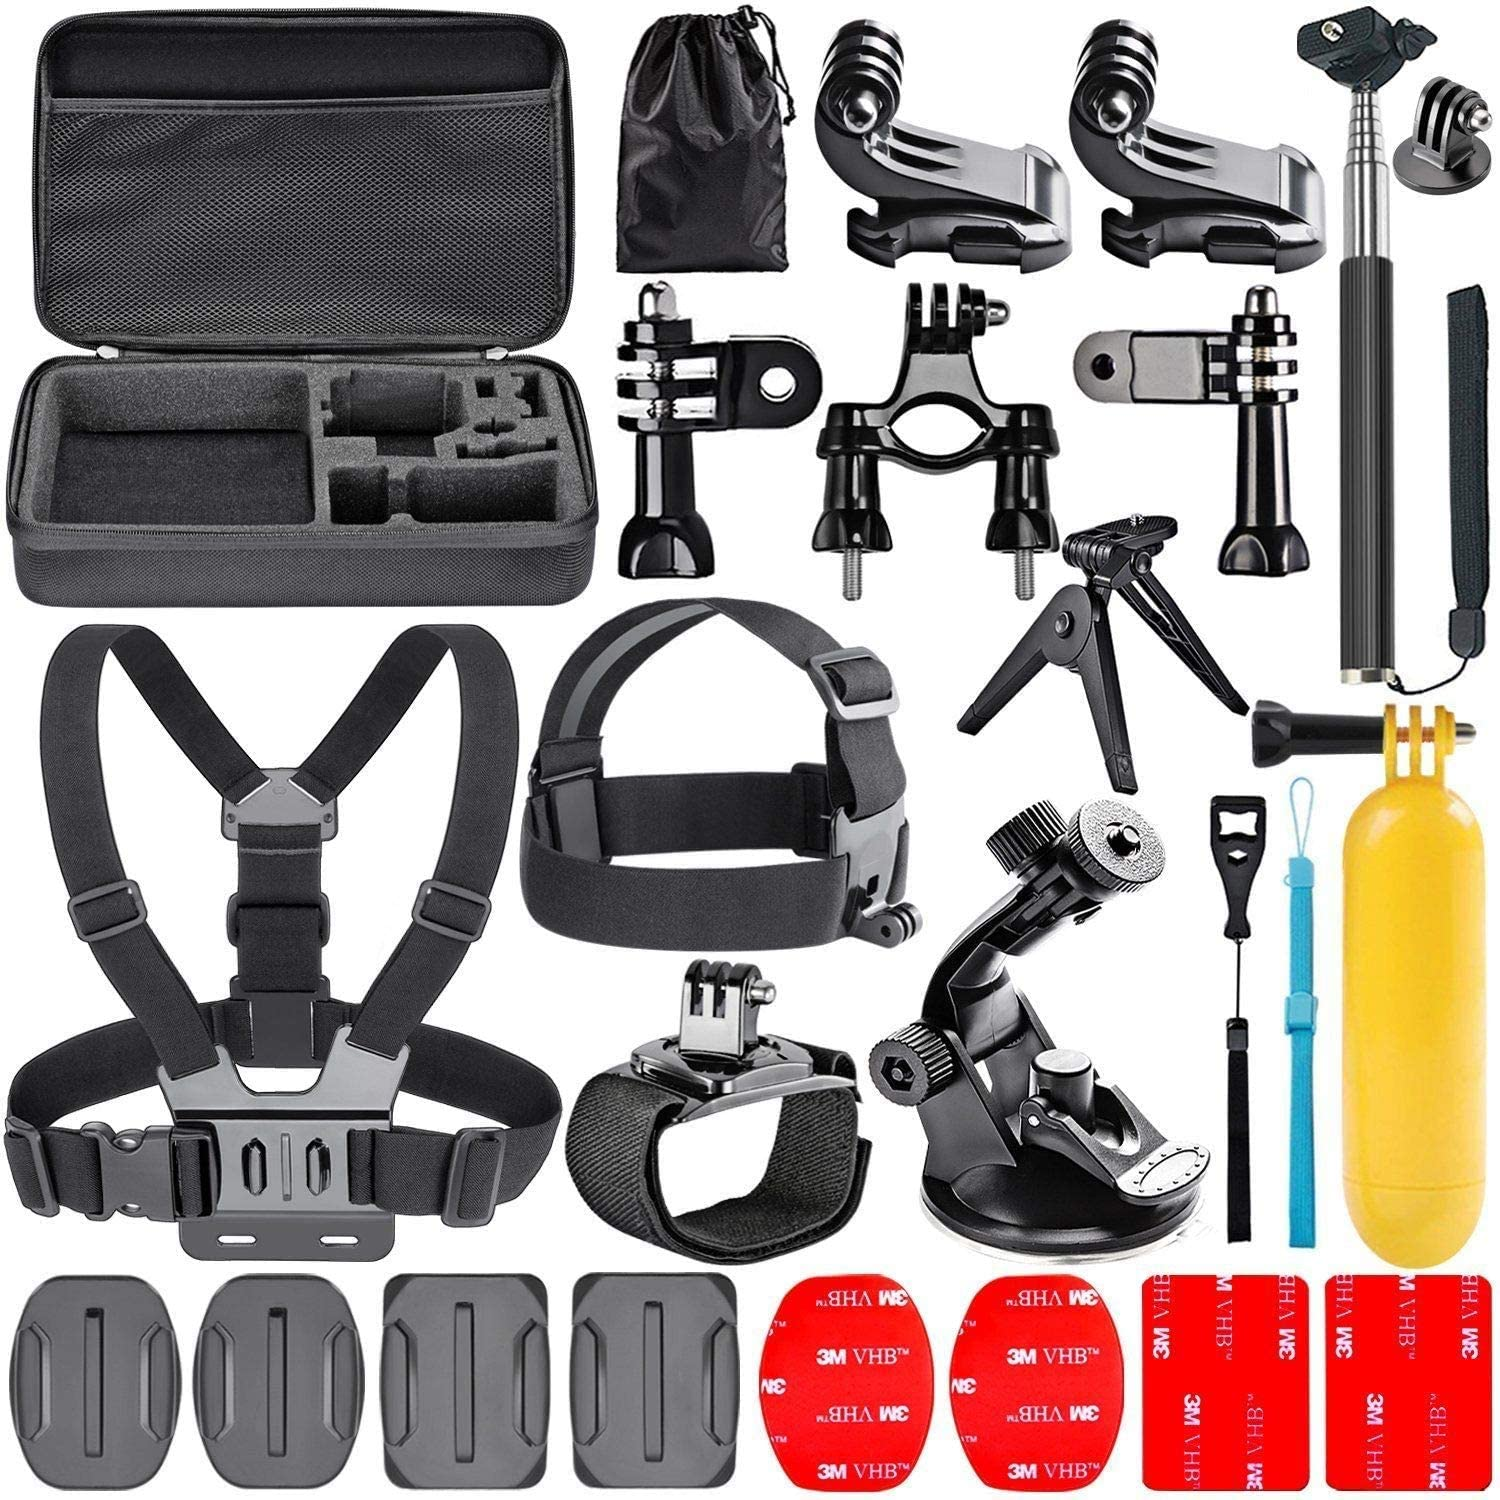 Navitech 18-in-1 Action Camera Accessories Combo Kit with EVA Case - Compatible with The GoPro HERO7 4K Digital Action Camera